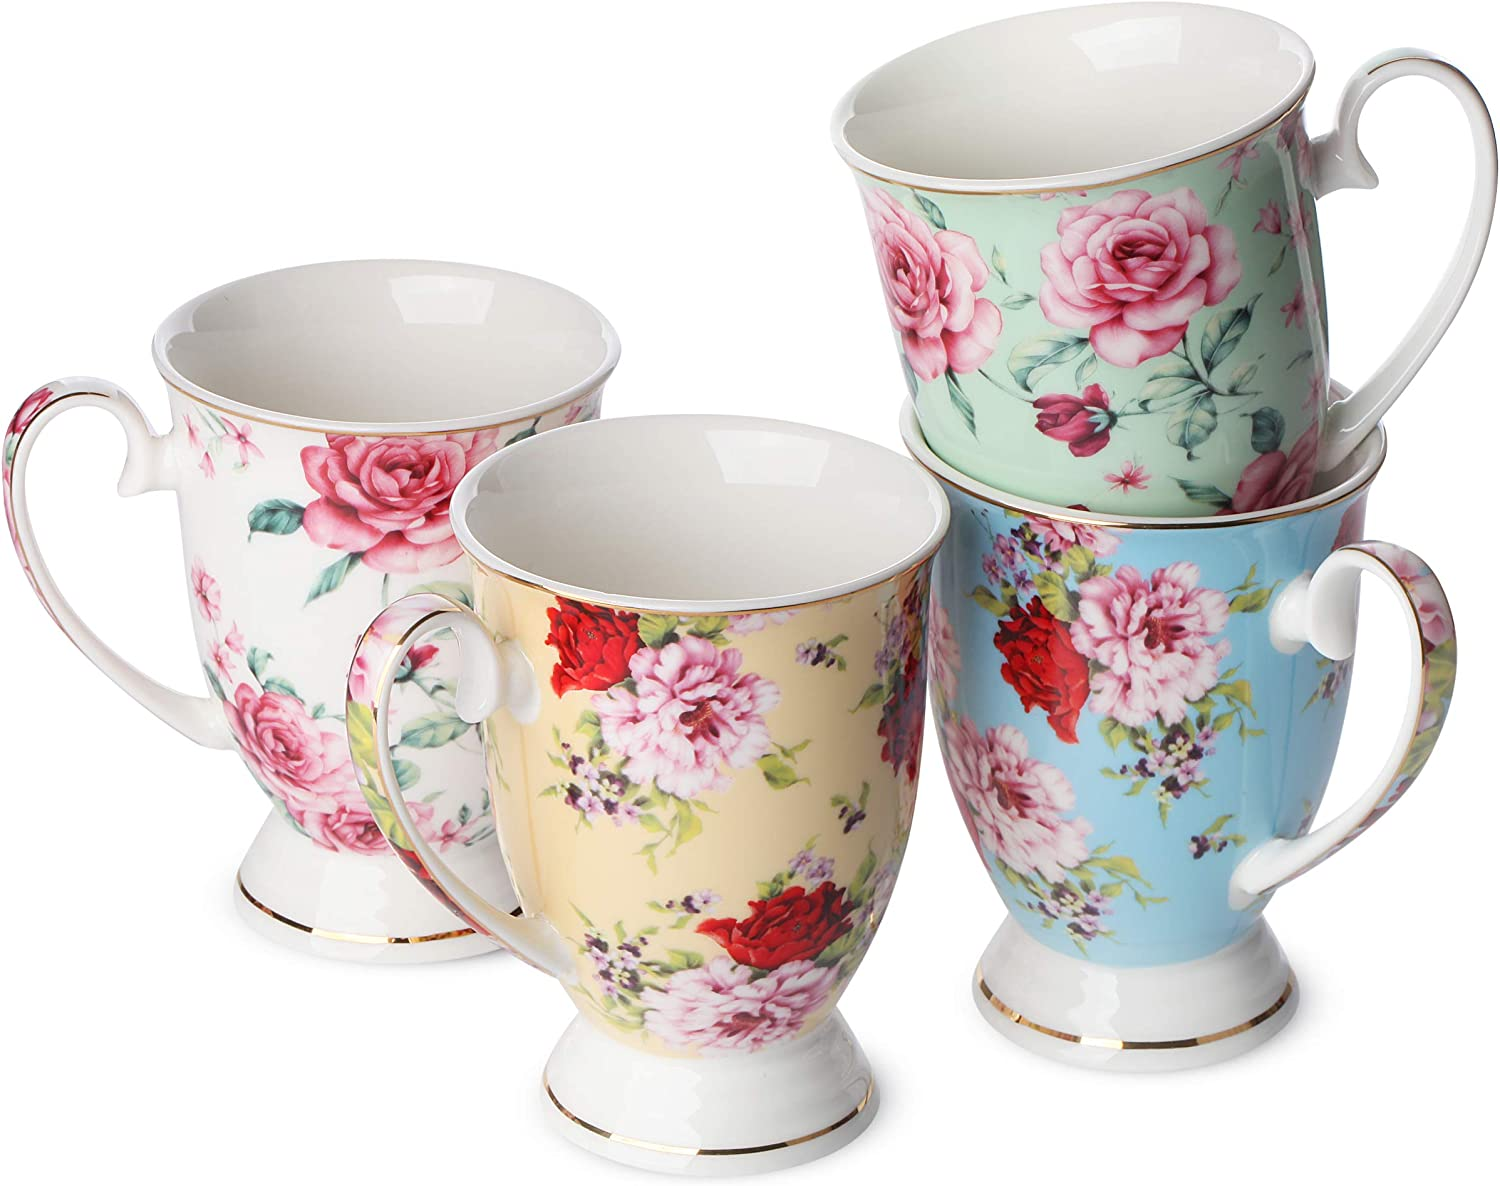 Amazon Com Btat Coffee Mugs 12 Oz Set Of 4 Floral Mugs Porcelain Bone China Tea Mug Coffee Cups Coffee Mug Set Large Coffee Mugs Coffee Cups Set Mugs For Coffee Tea Cups